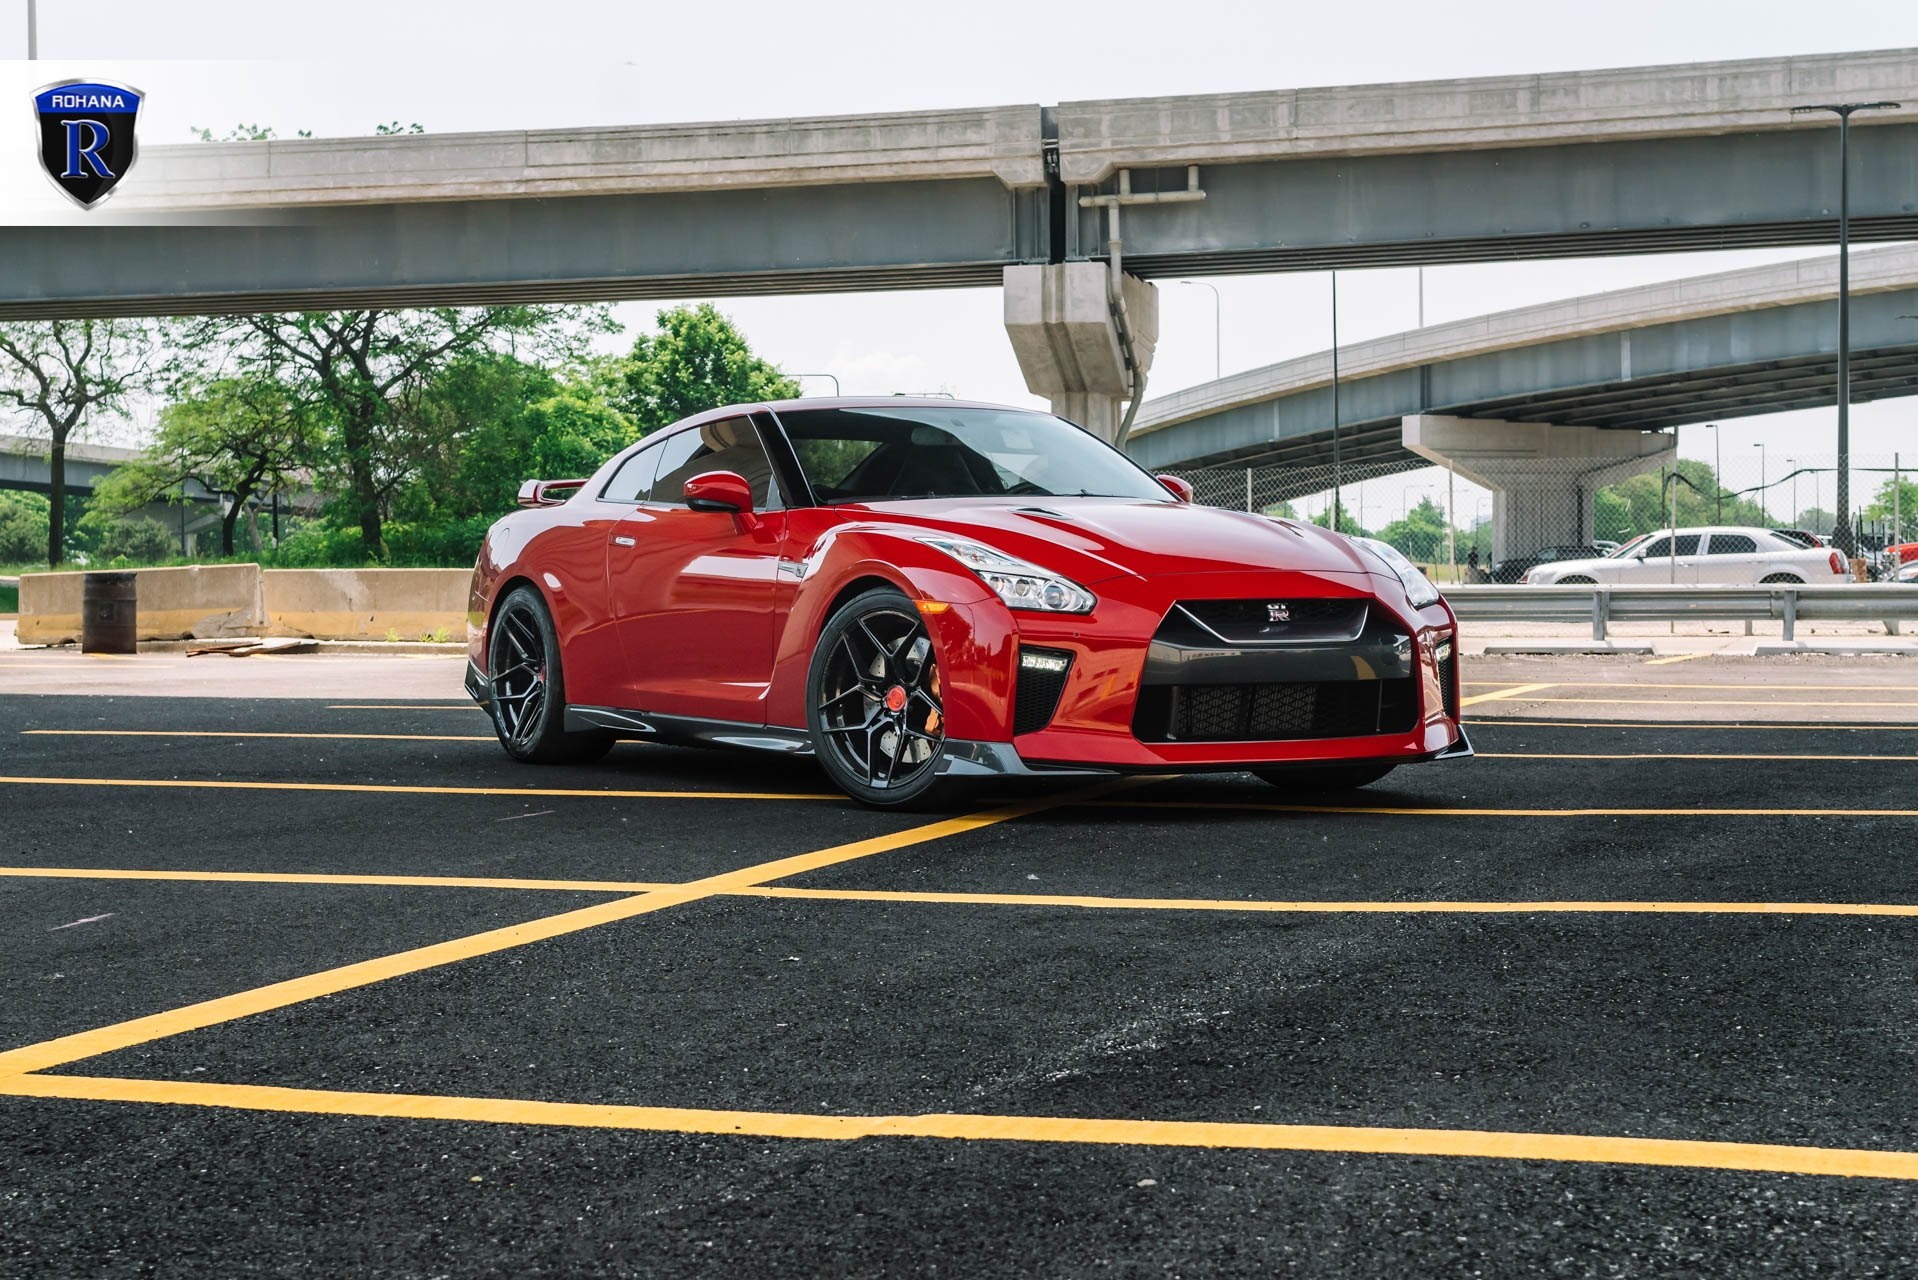 Red Nissan GT-R with Crystal Clear Headlights - Photo by Rohana Wheels